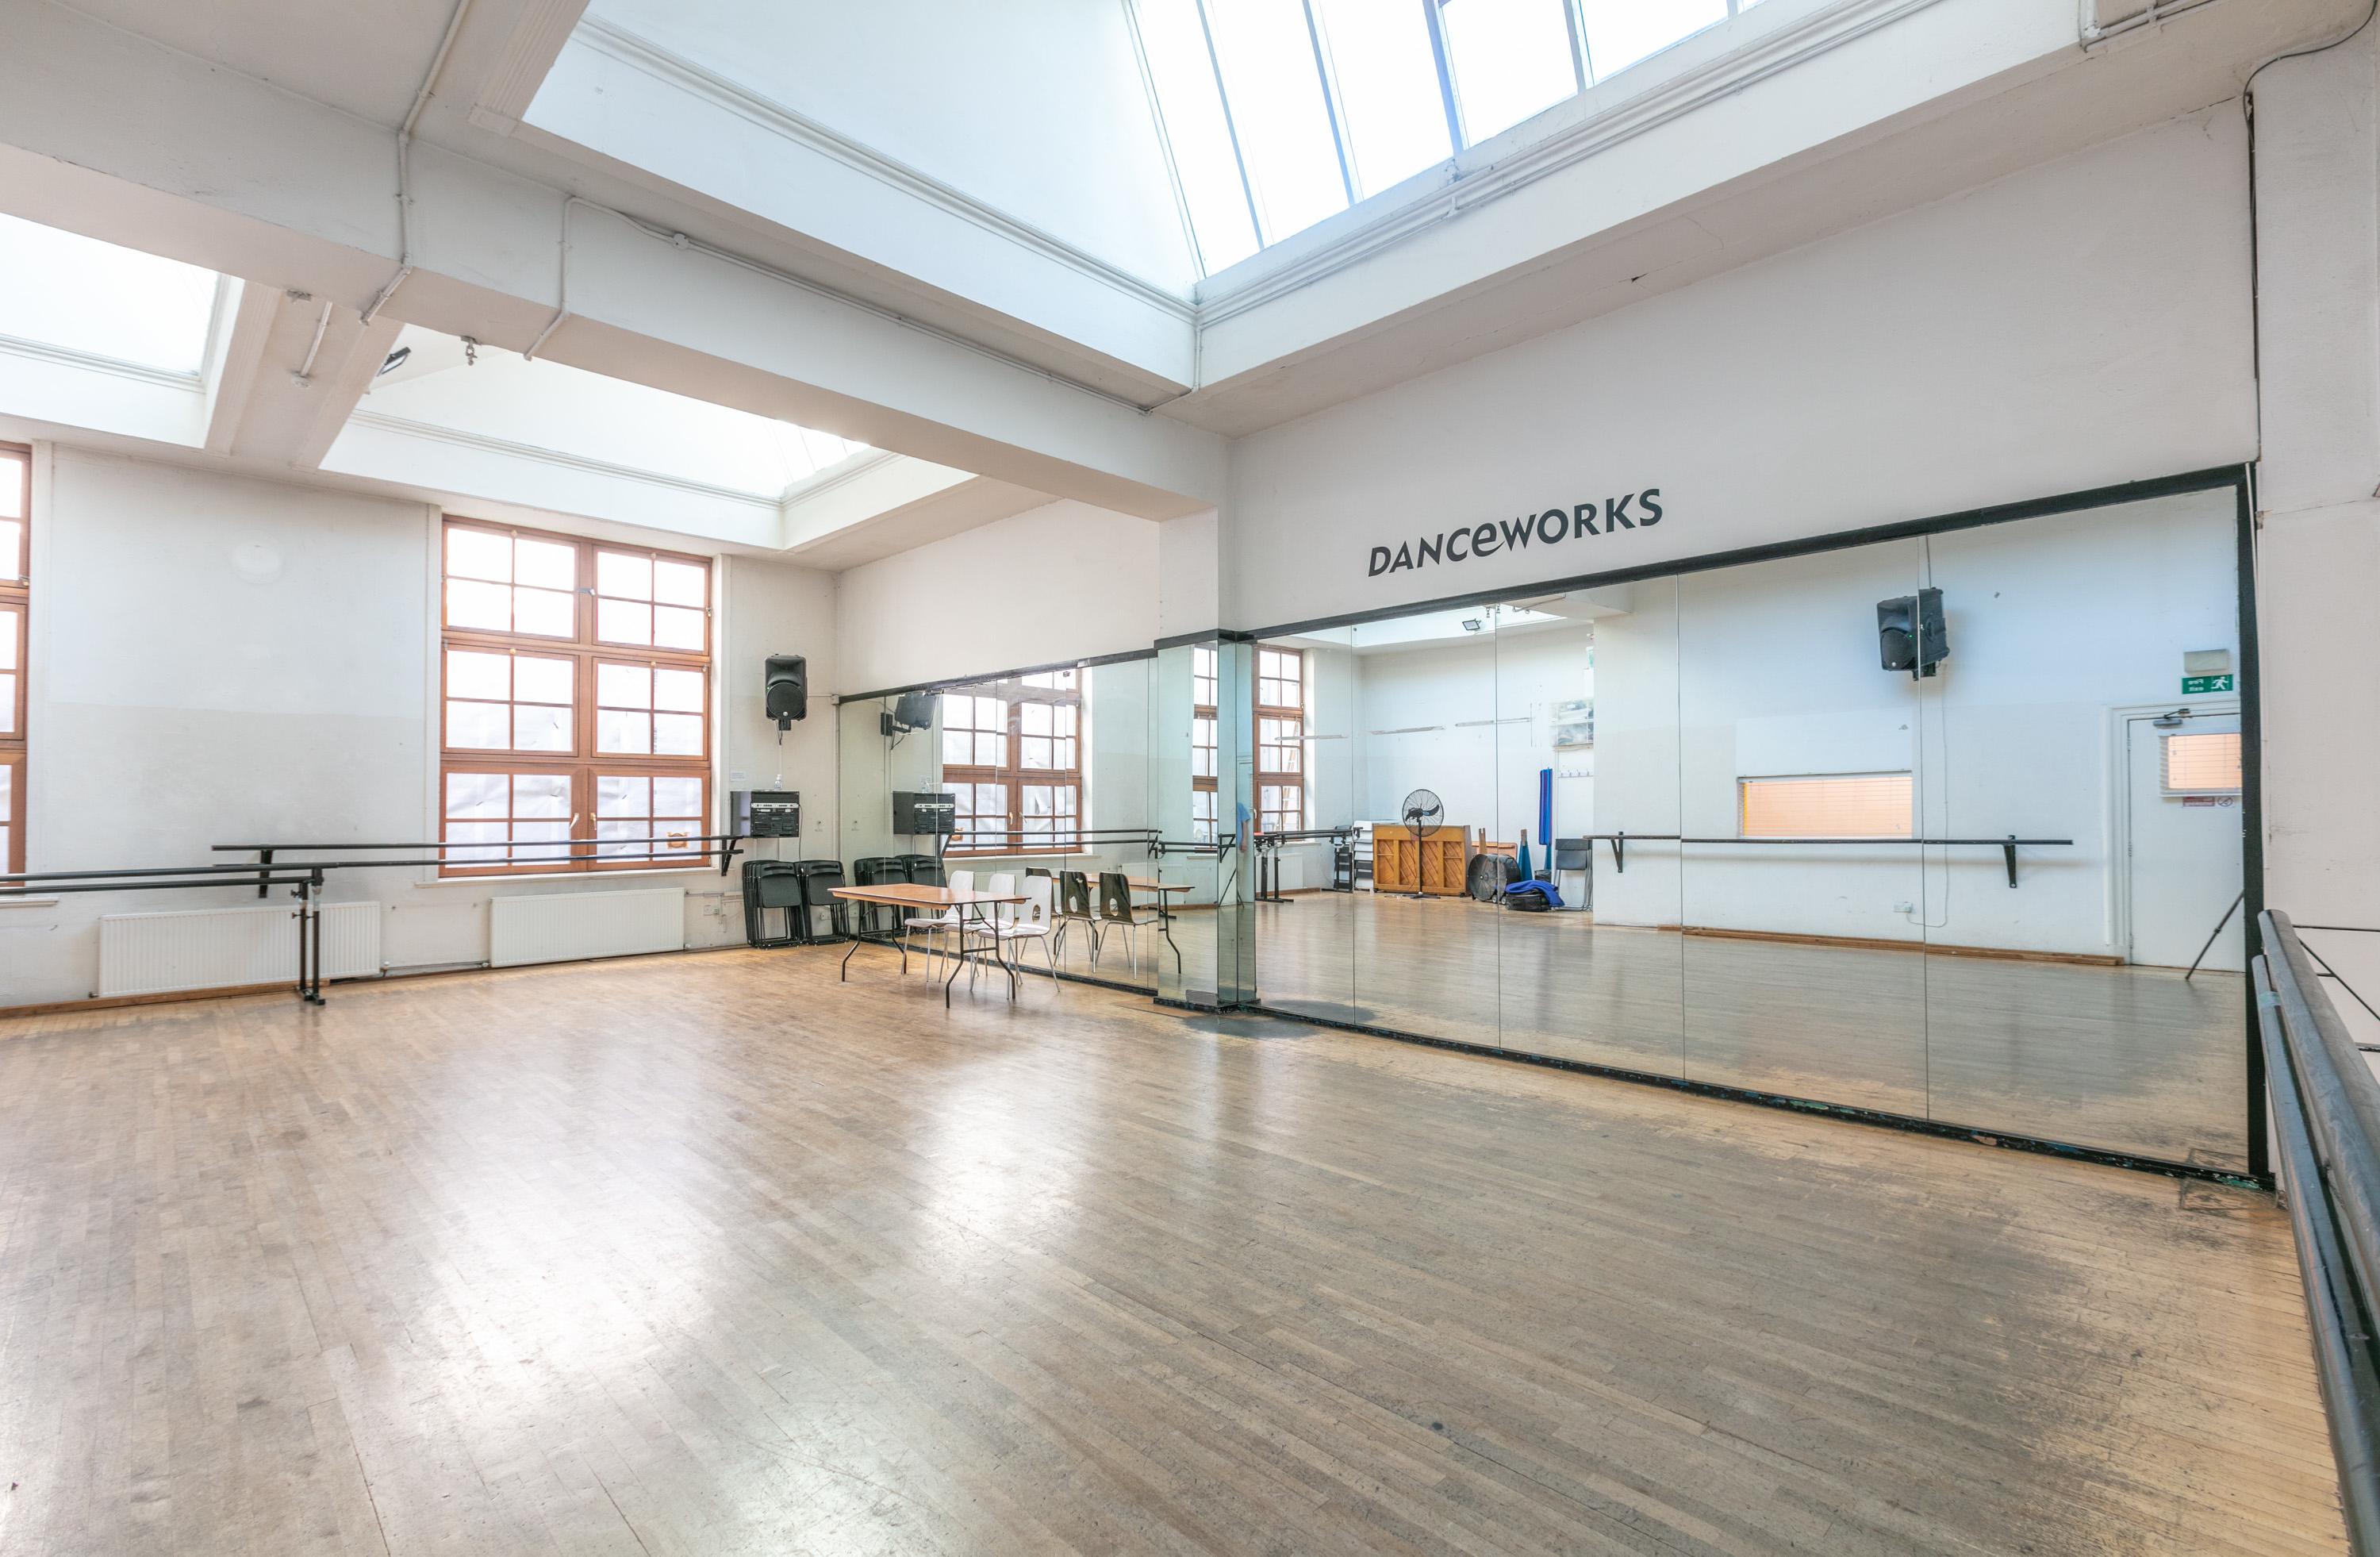 Studio hire at Danceworks London Mayfair